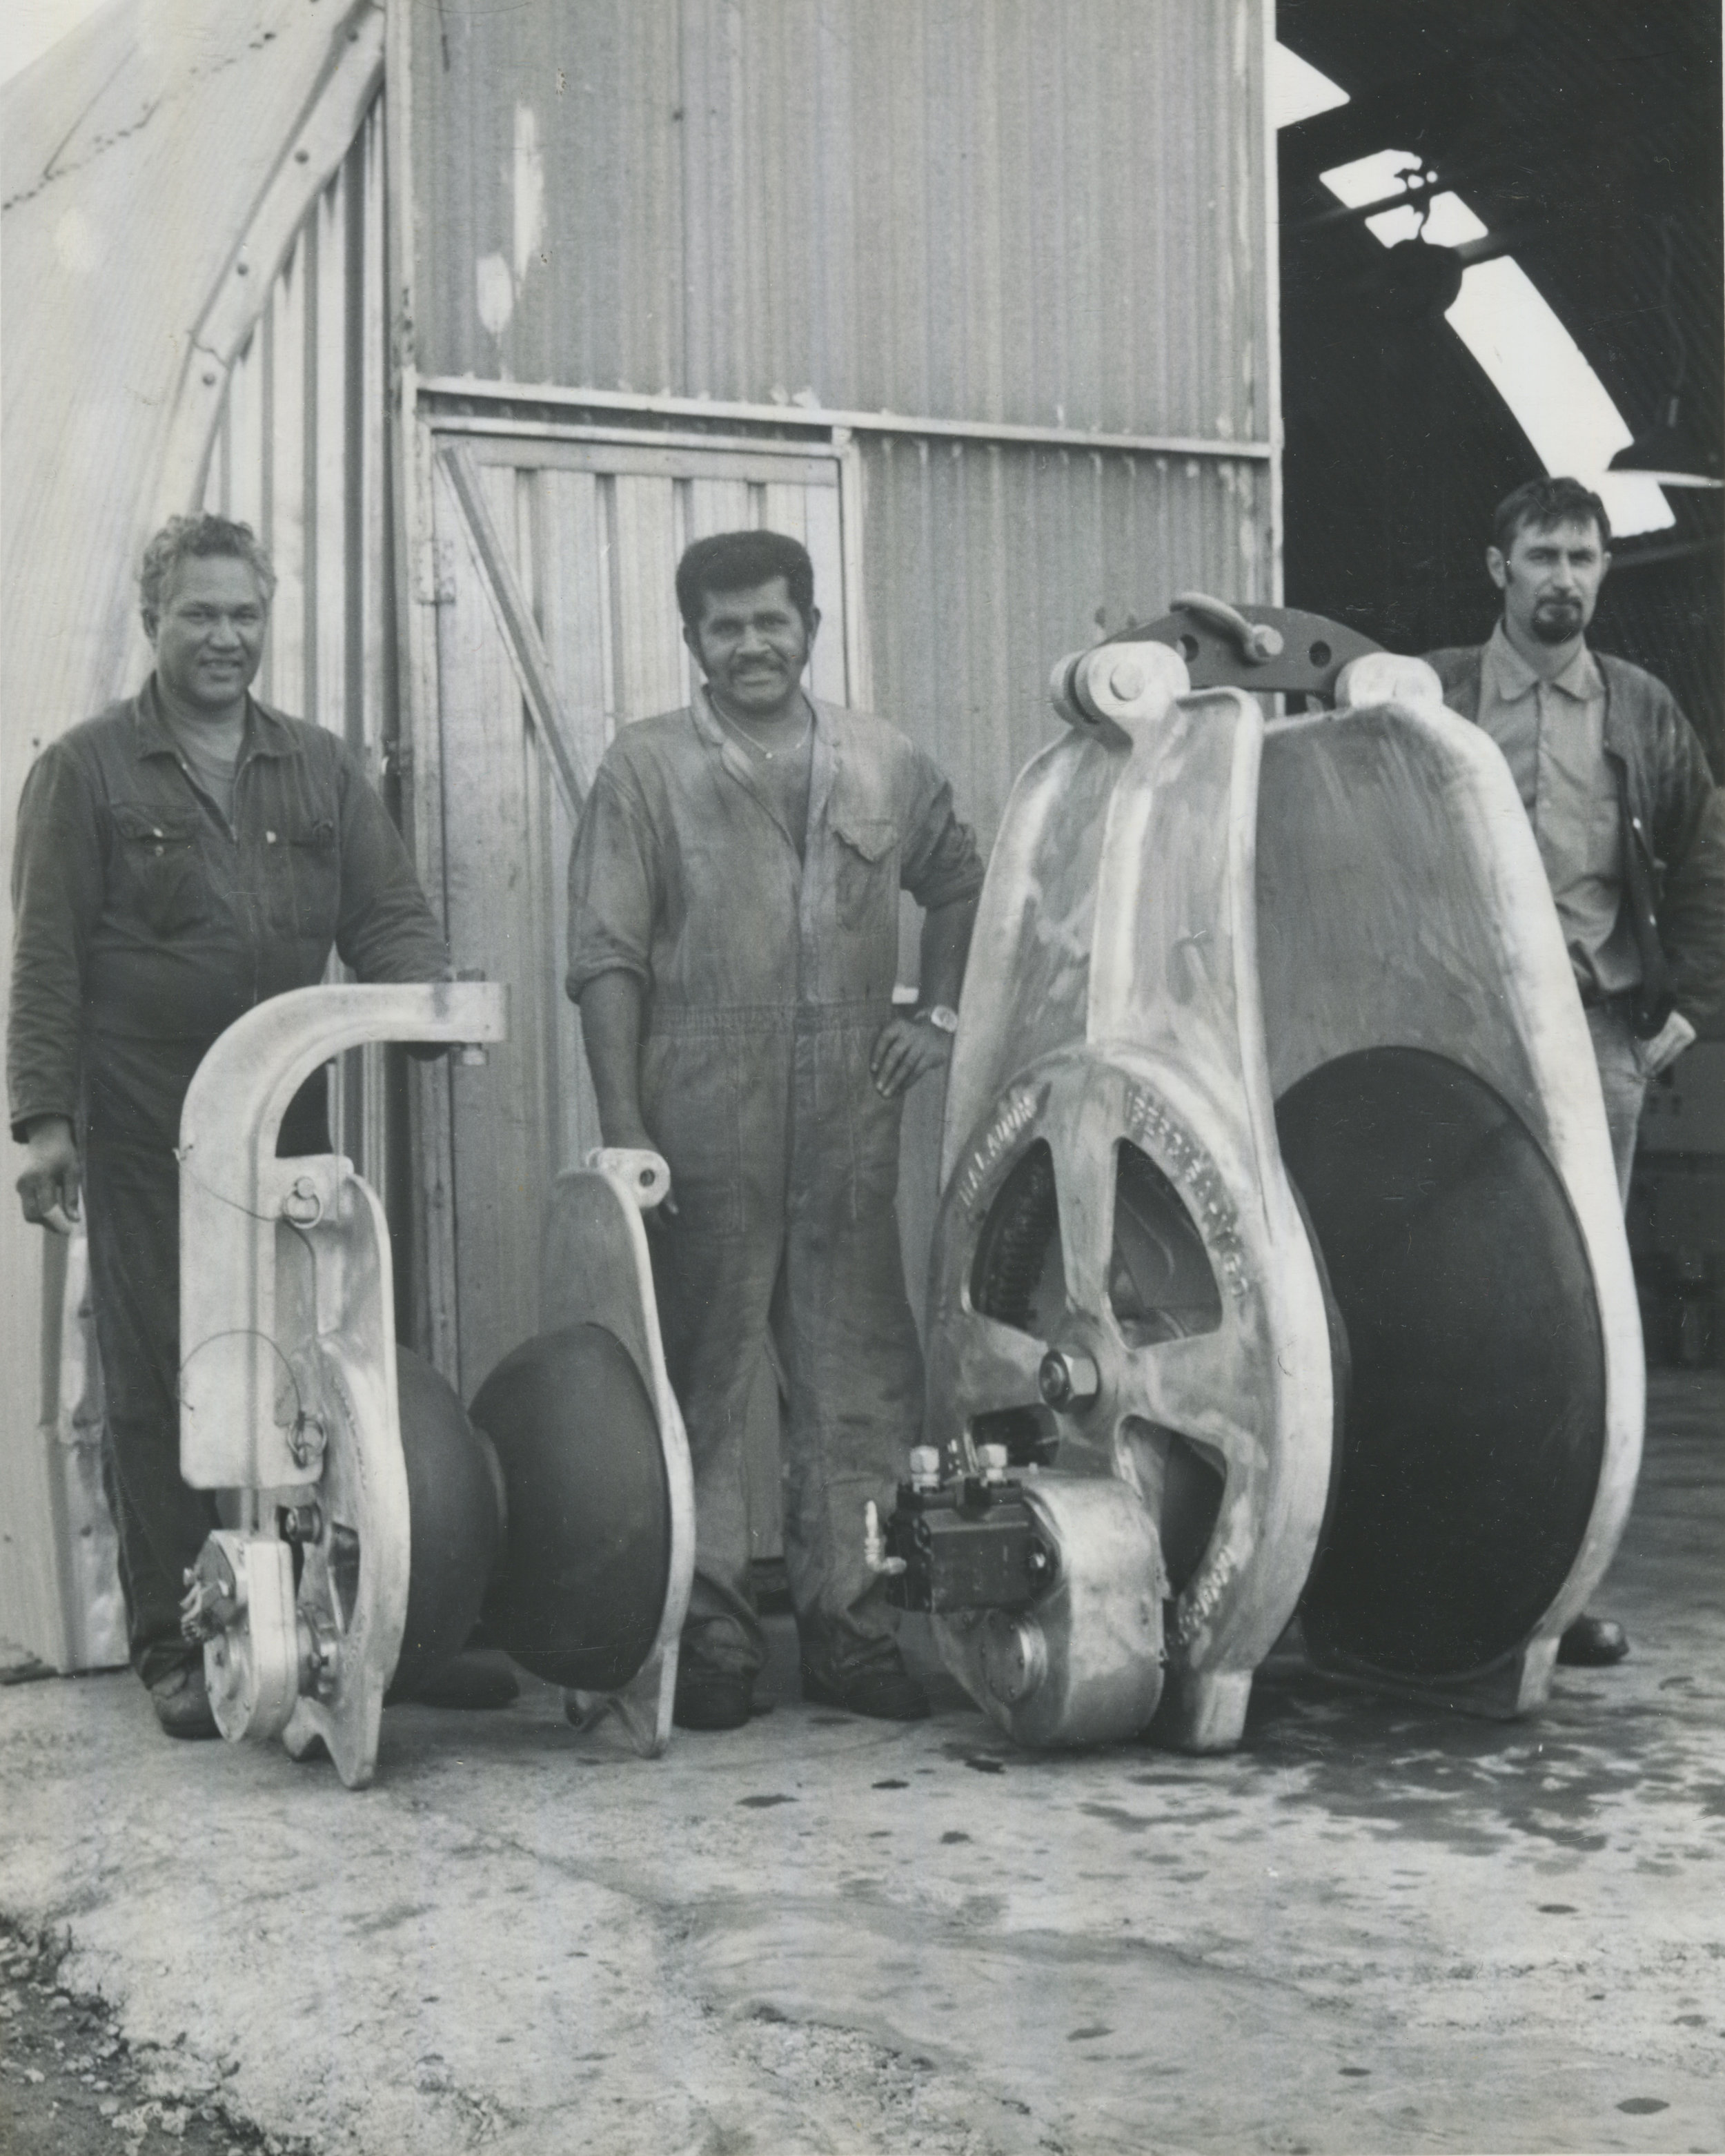 """The dock workers (Jack O'Brian, unknown and """"John the Pom"""") standing with their ship pulleys in 1970s. Courtesy of Titan Engineering."""